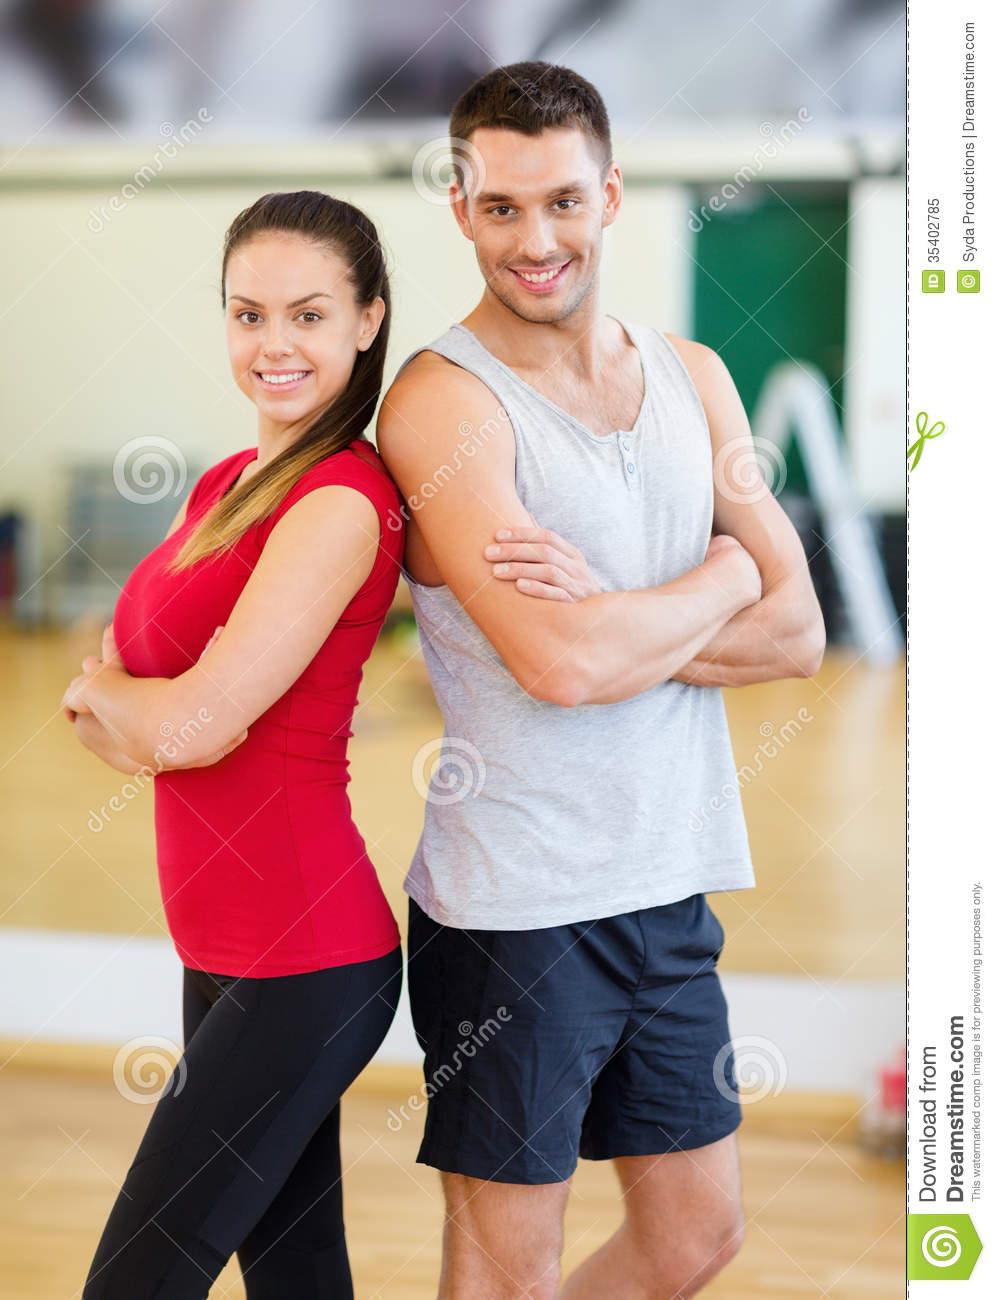 Two smiling people in the gym royalty free stock photo for Gimnasio sport gym